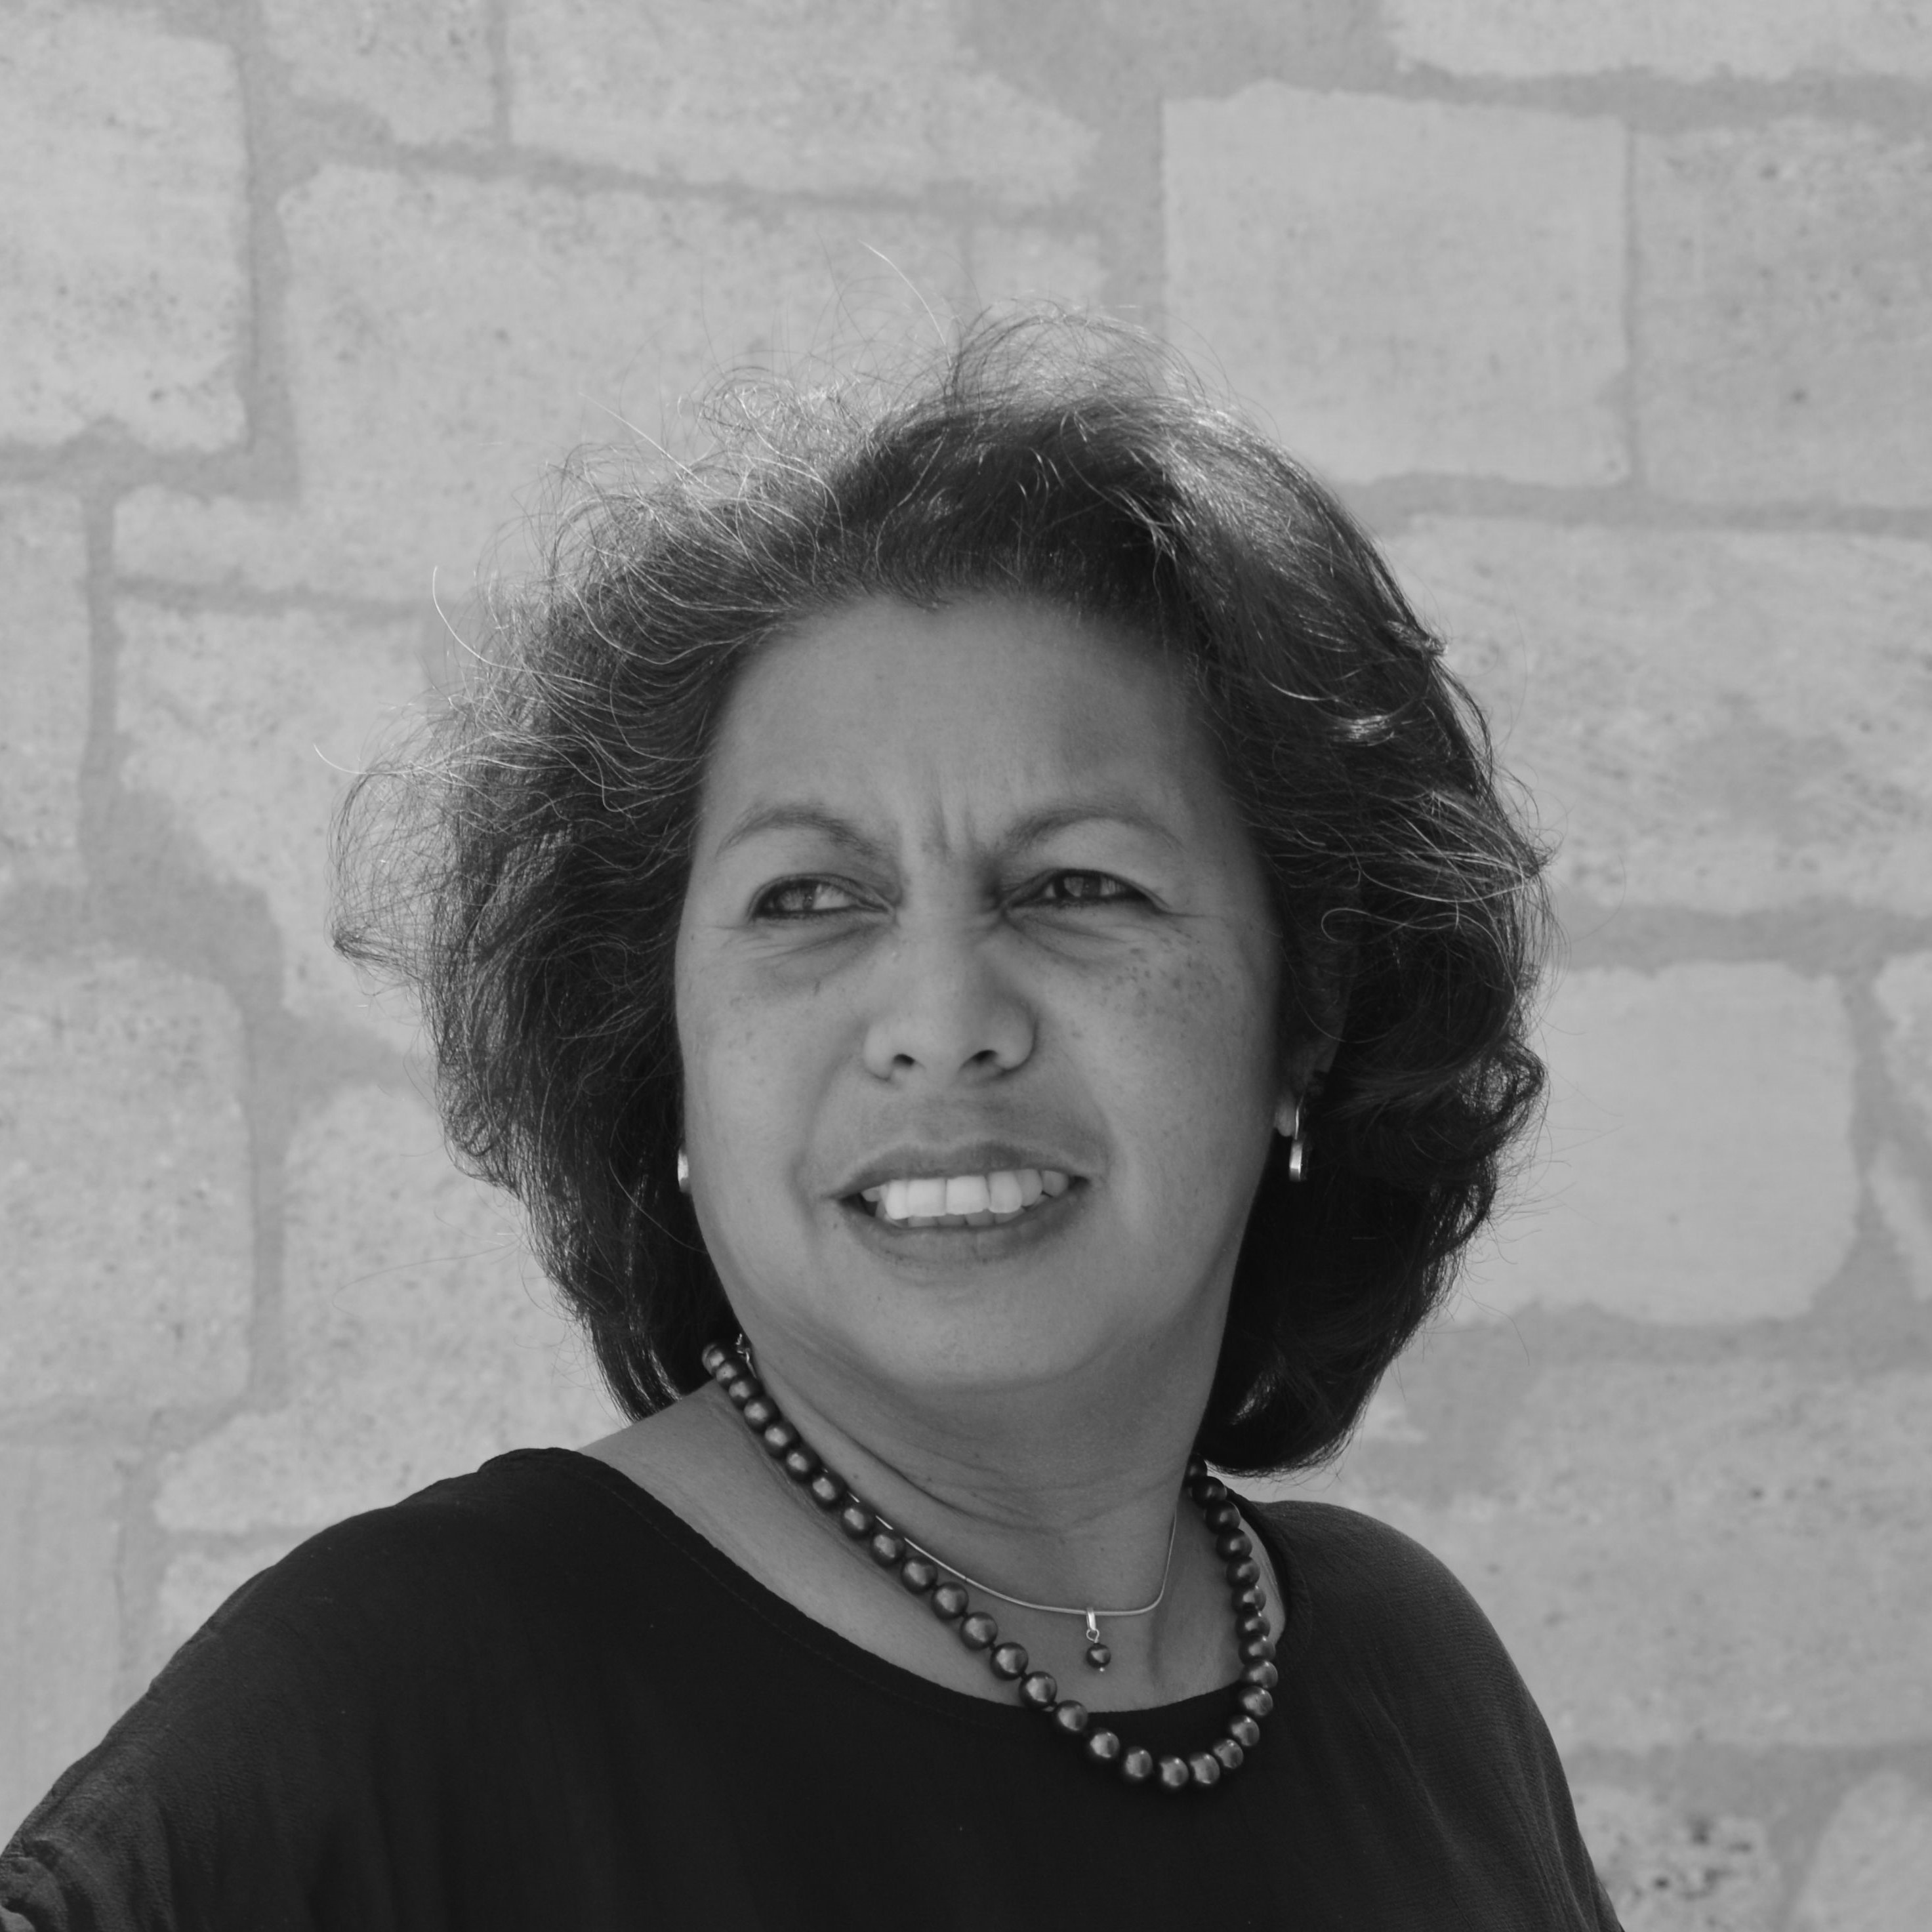 Mary TUPAN-WENNO, Executive Director, ECHO, Center for Diversity Policy